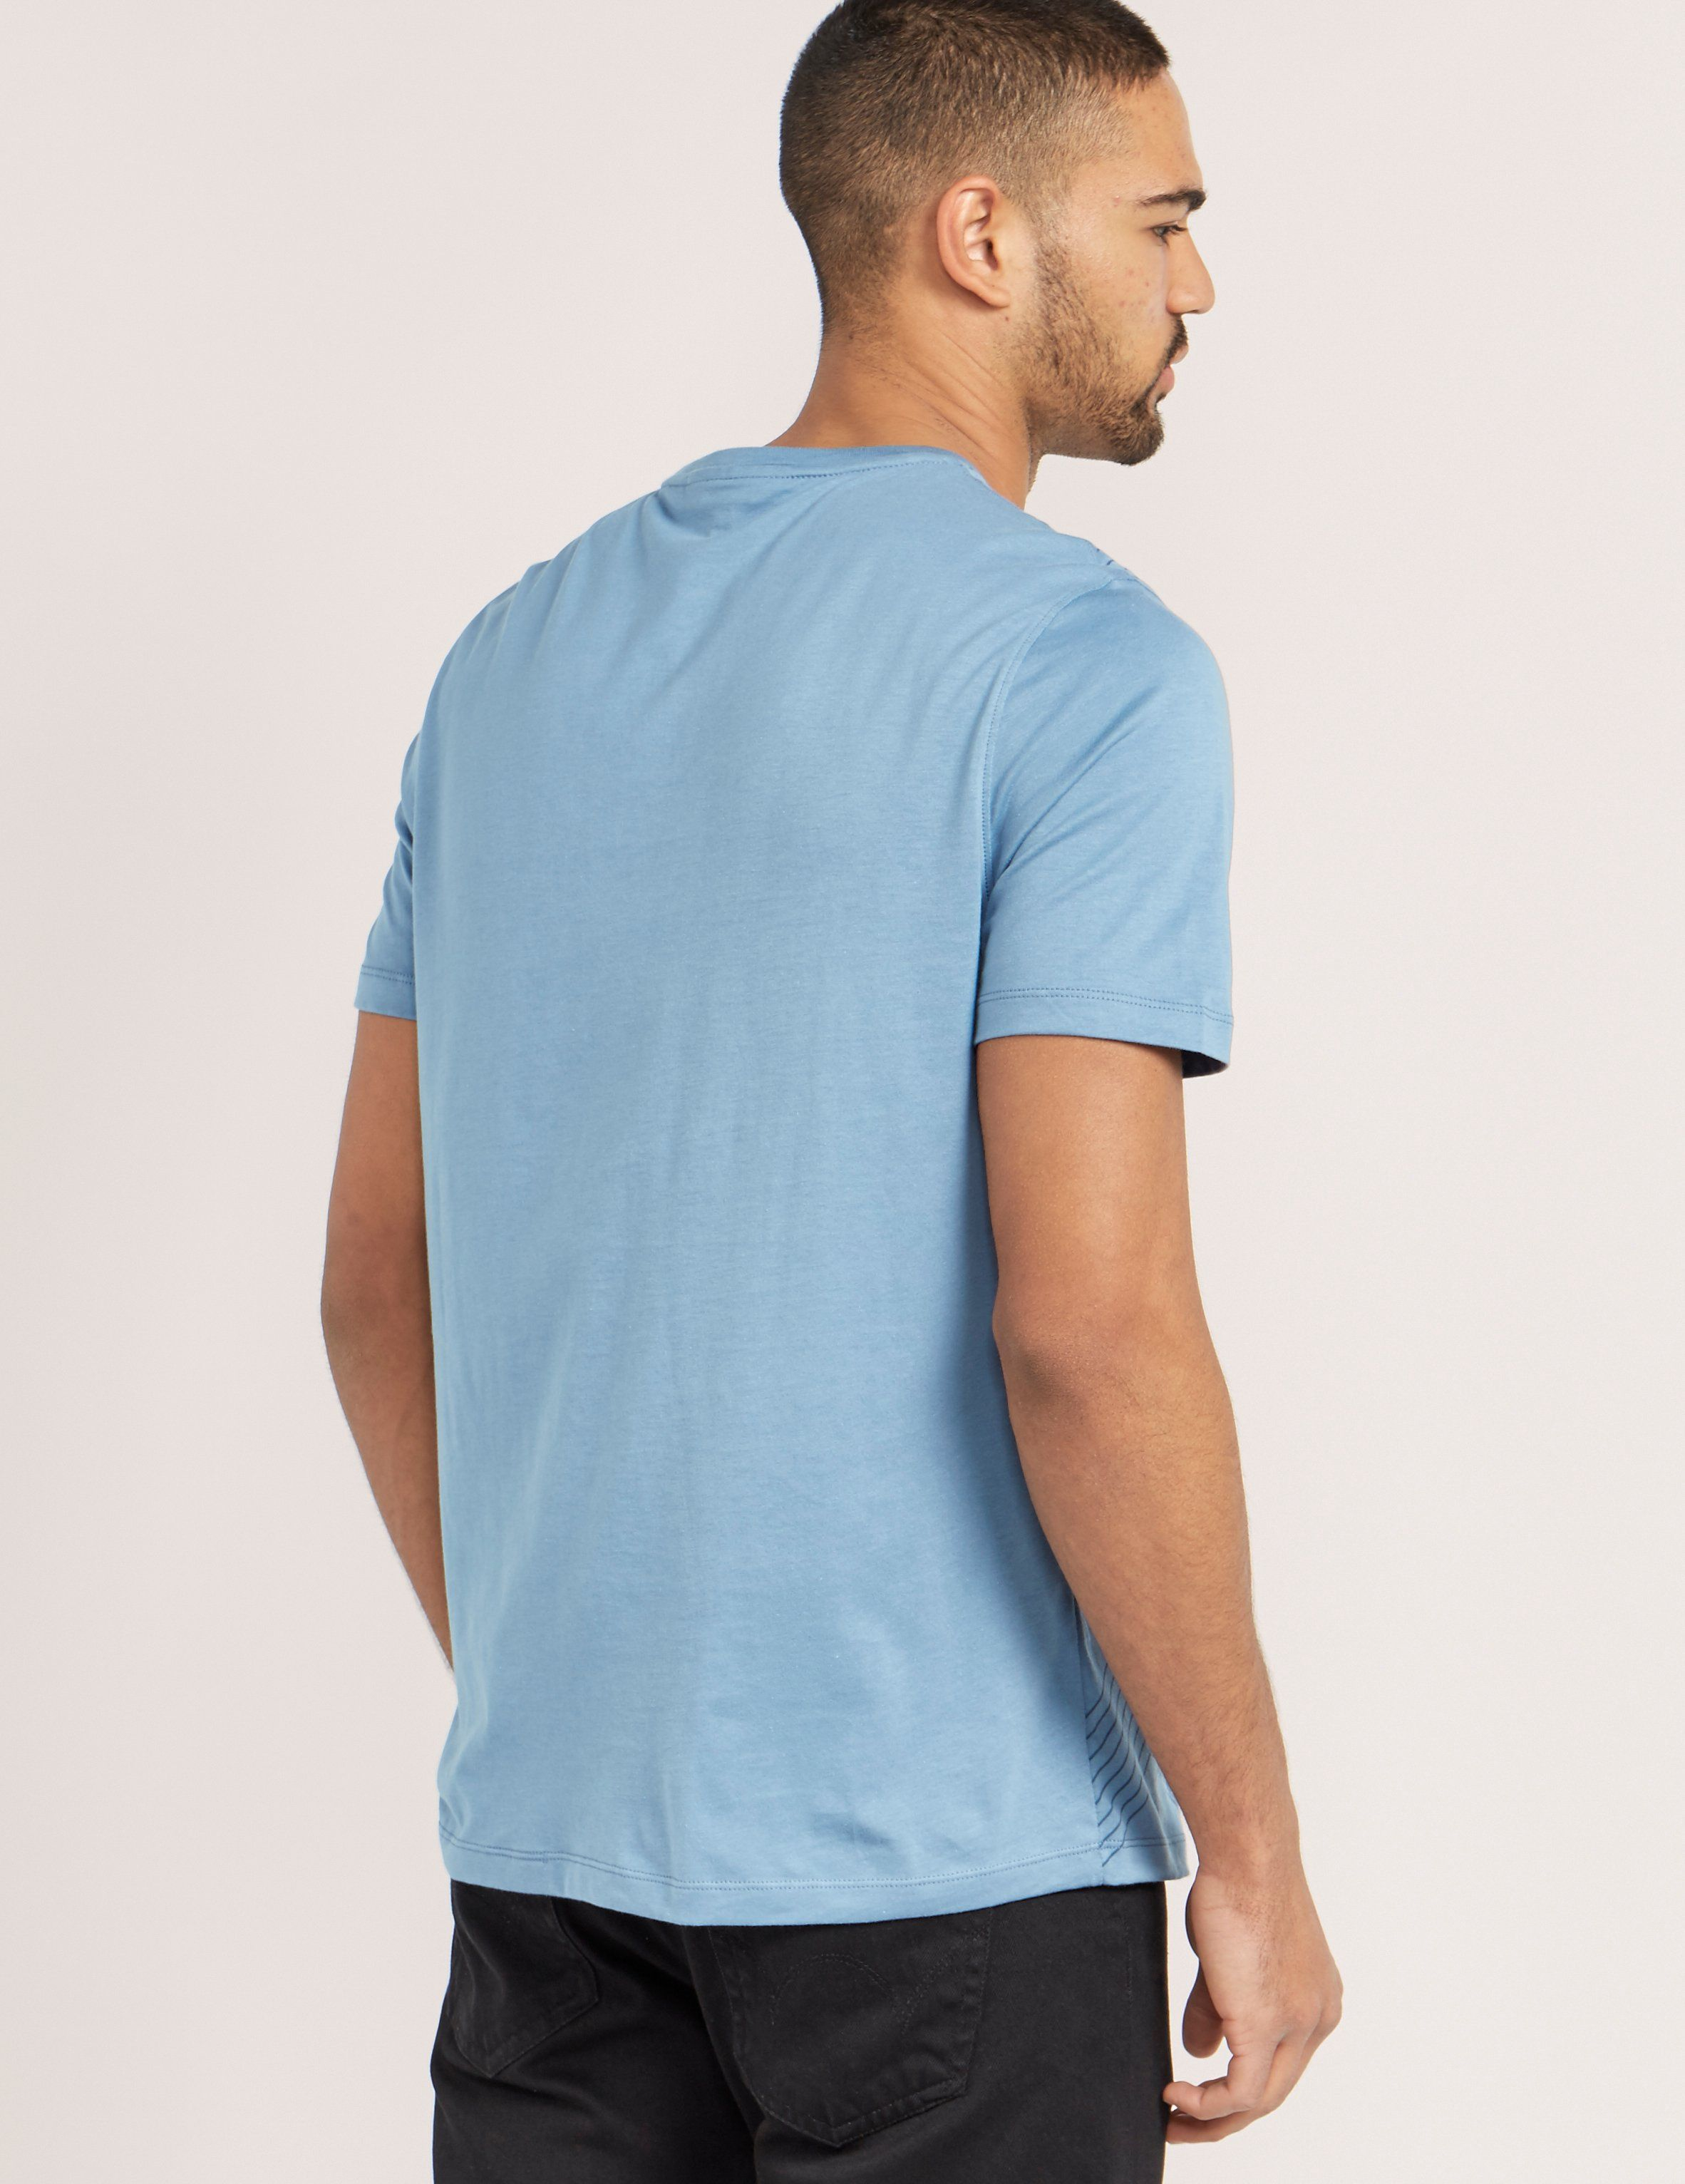 Michael Kors Maze Short Sleeve T-Shirt